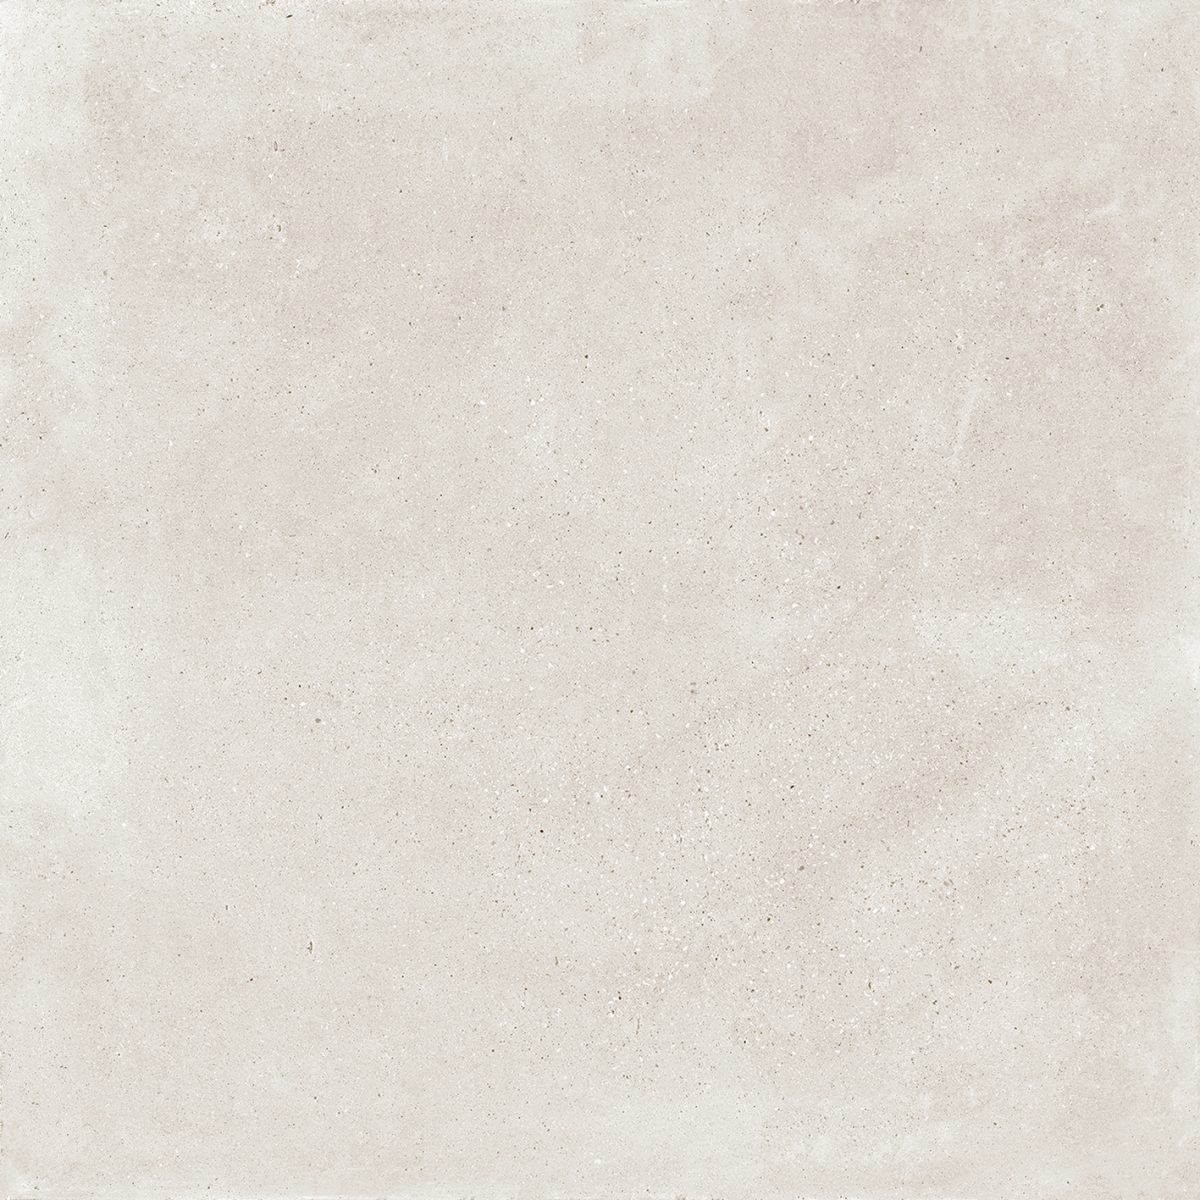 Porcelanosa Bottega Caliza Anti-Slip Tile 120 x 120 cm